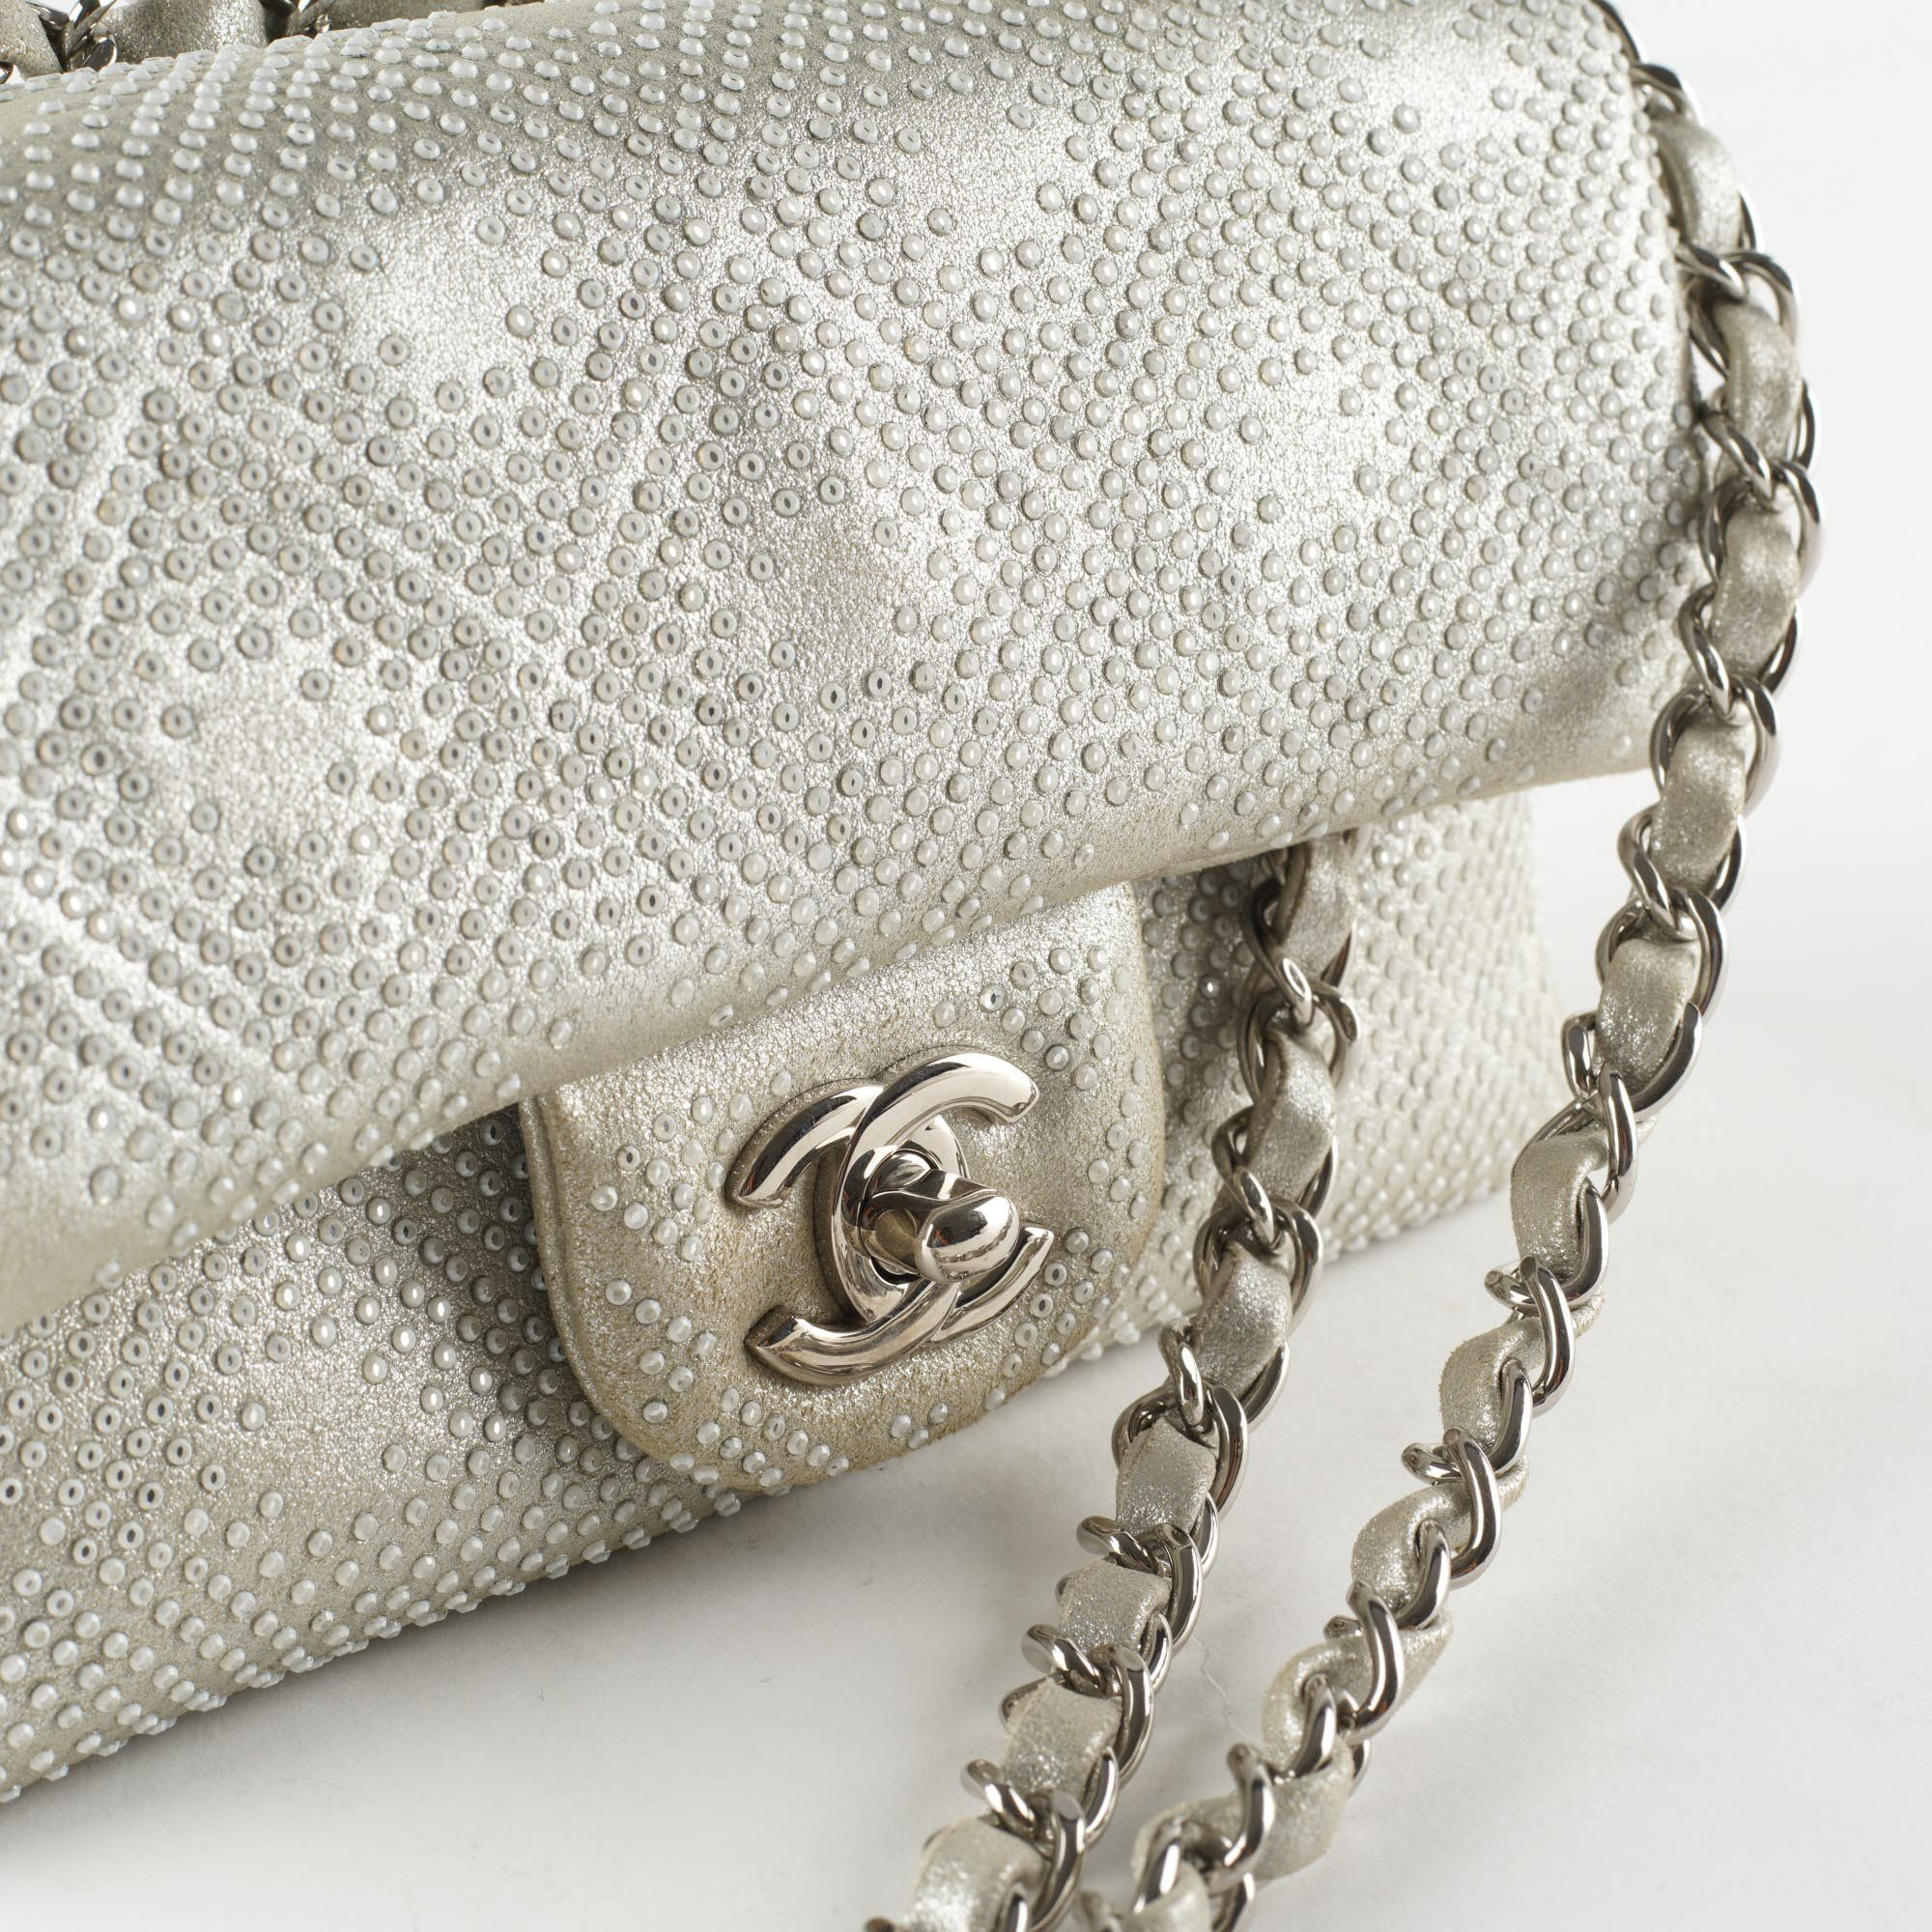 Chanel Bead Encrusted Small Flap Silver Bag